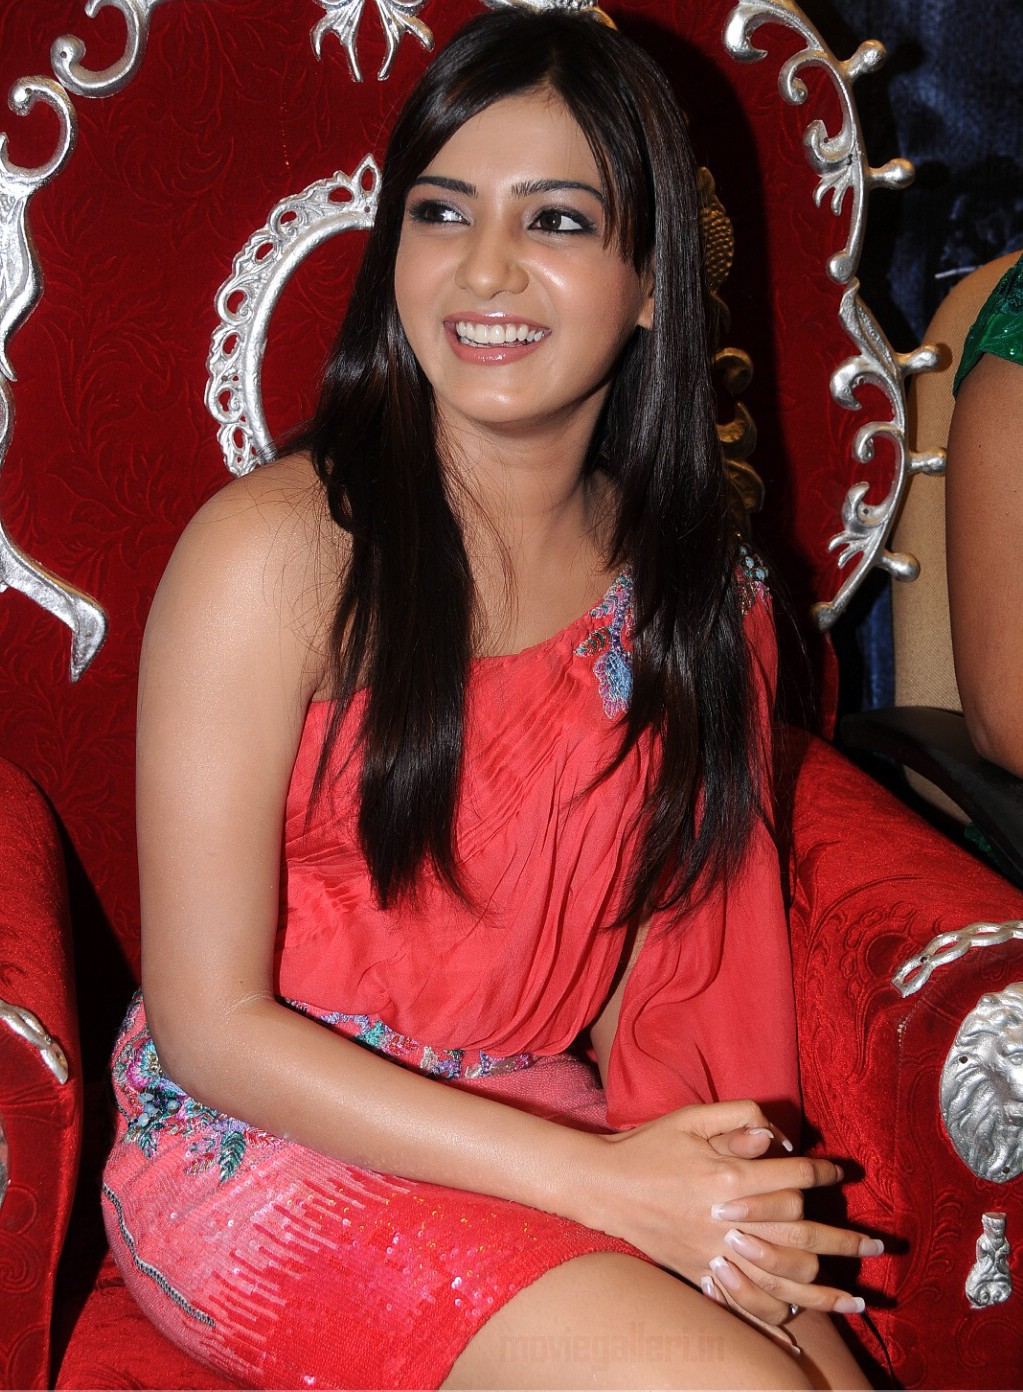 samantha ruth prabhu latest wallpapers, samantha ruth prabhu new